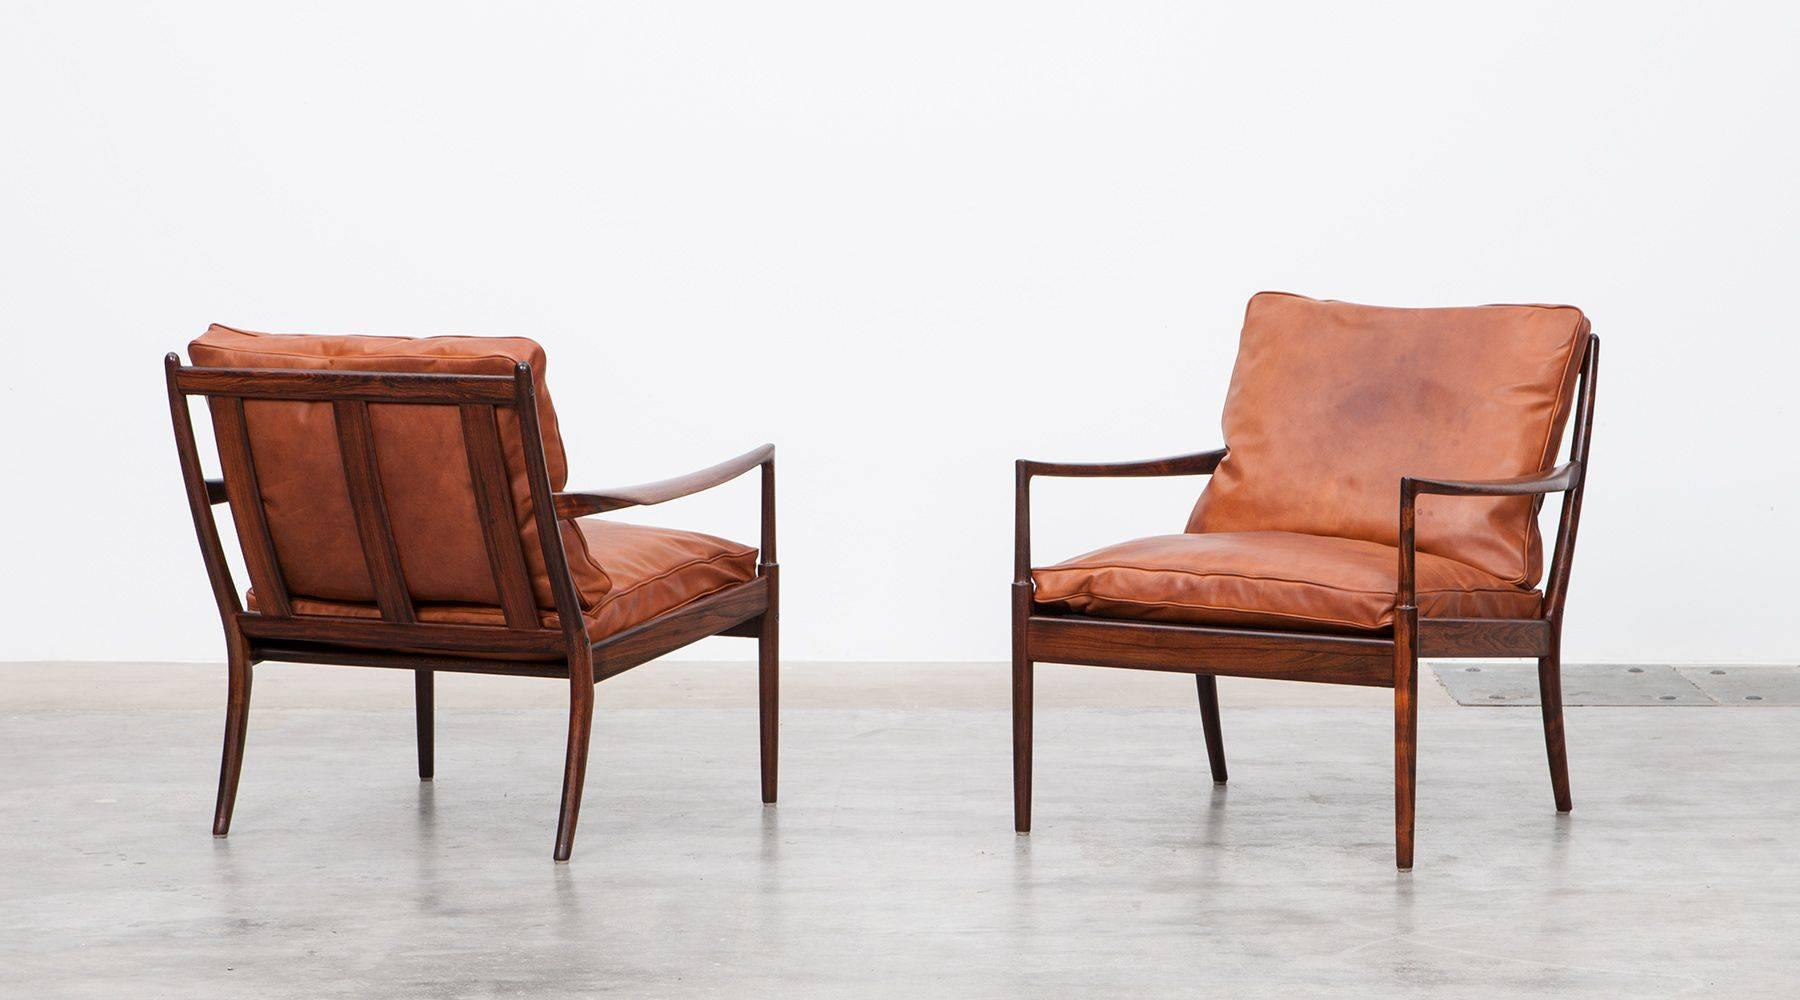 Pair Of 1950 Cognac Leather, Wooden Chairs By Ib Kofod Larsen 2